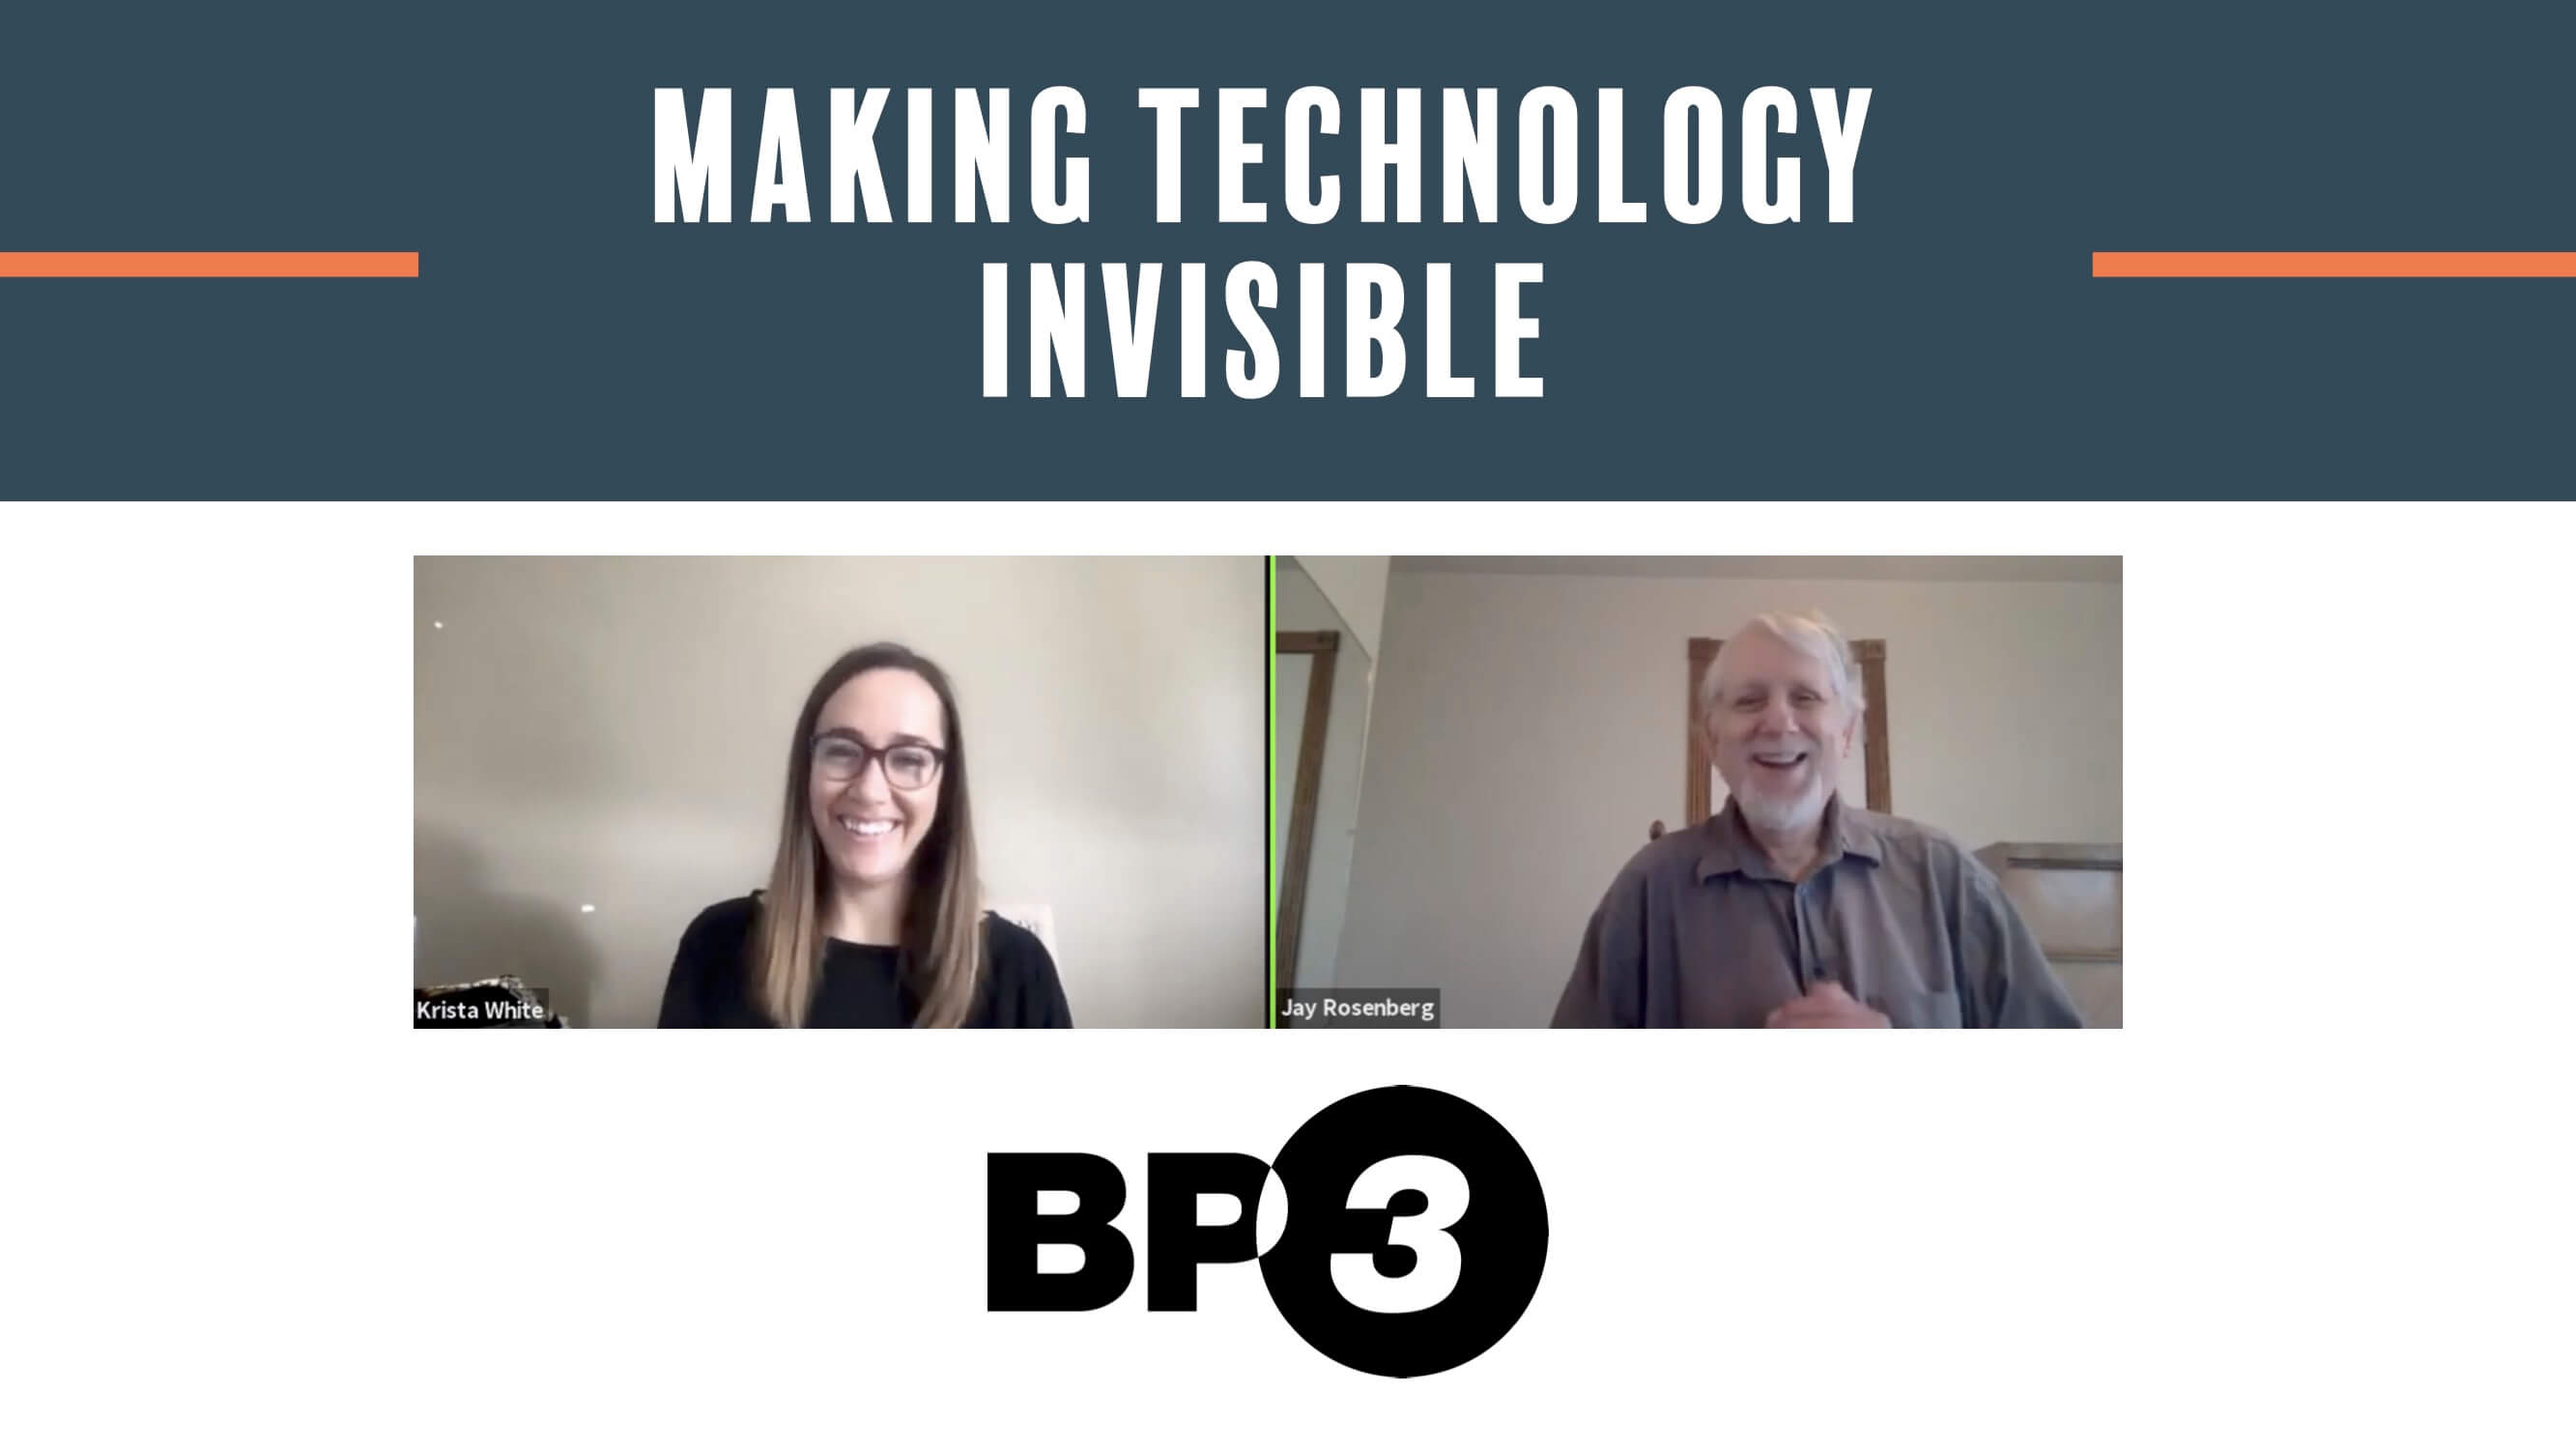 Making Technology Invisible